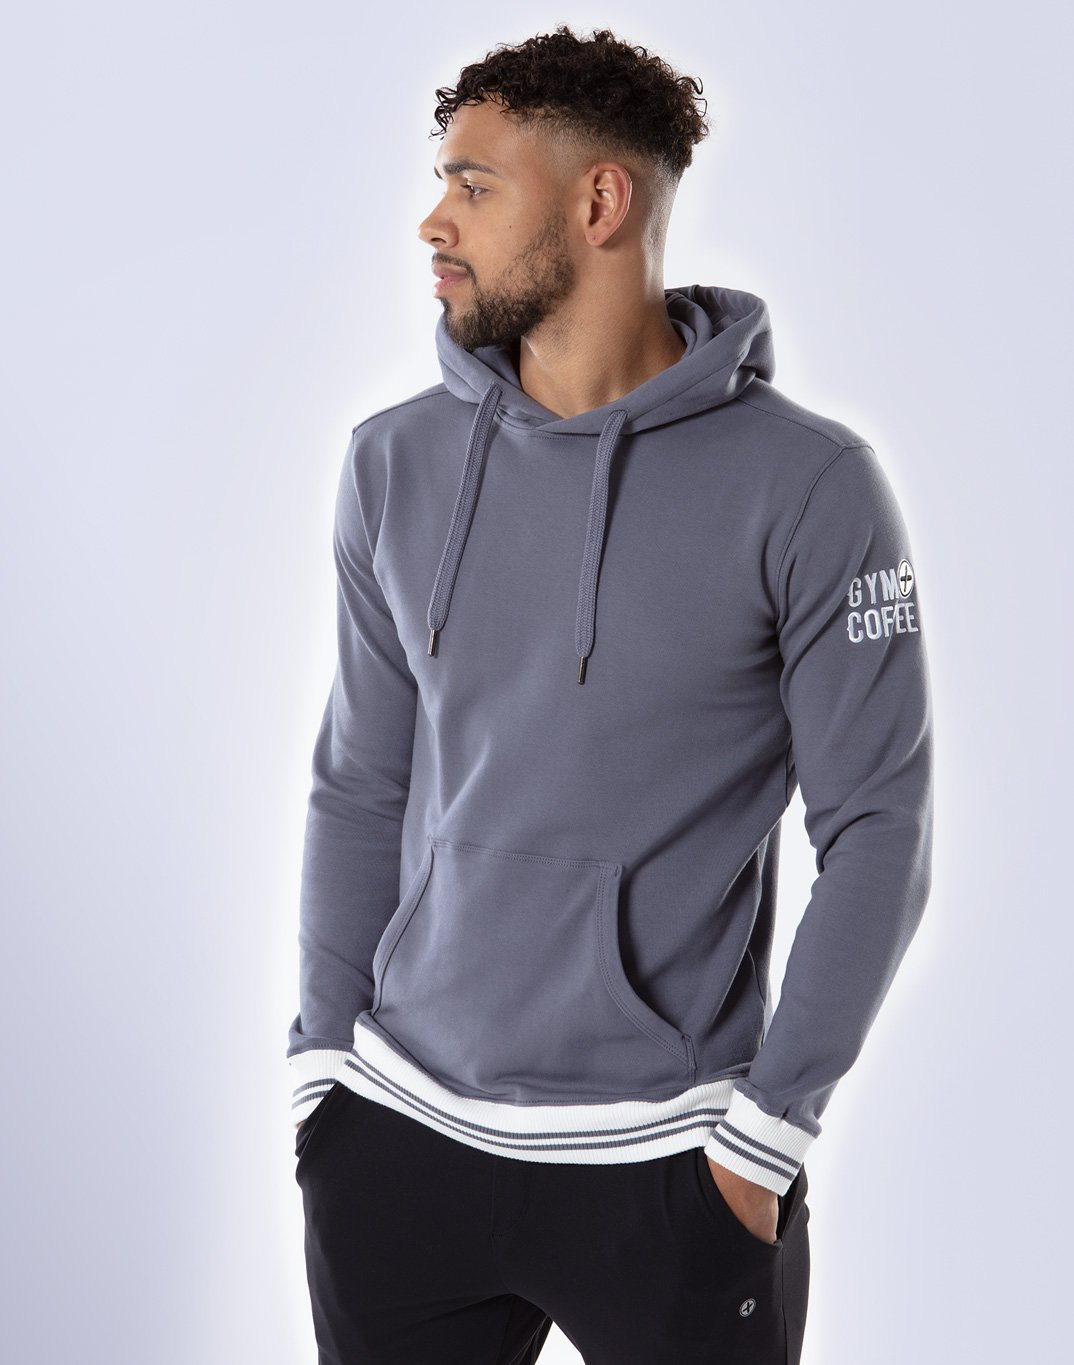 Gym Plus Coffee Hoodie Men's Retro Pullover Hoodie in Stone Blue Designed in Ireland